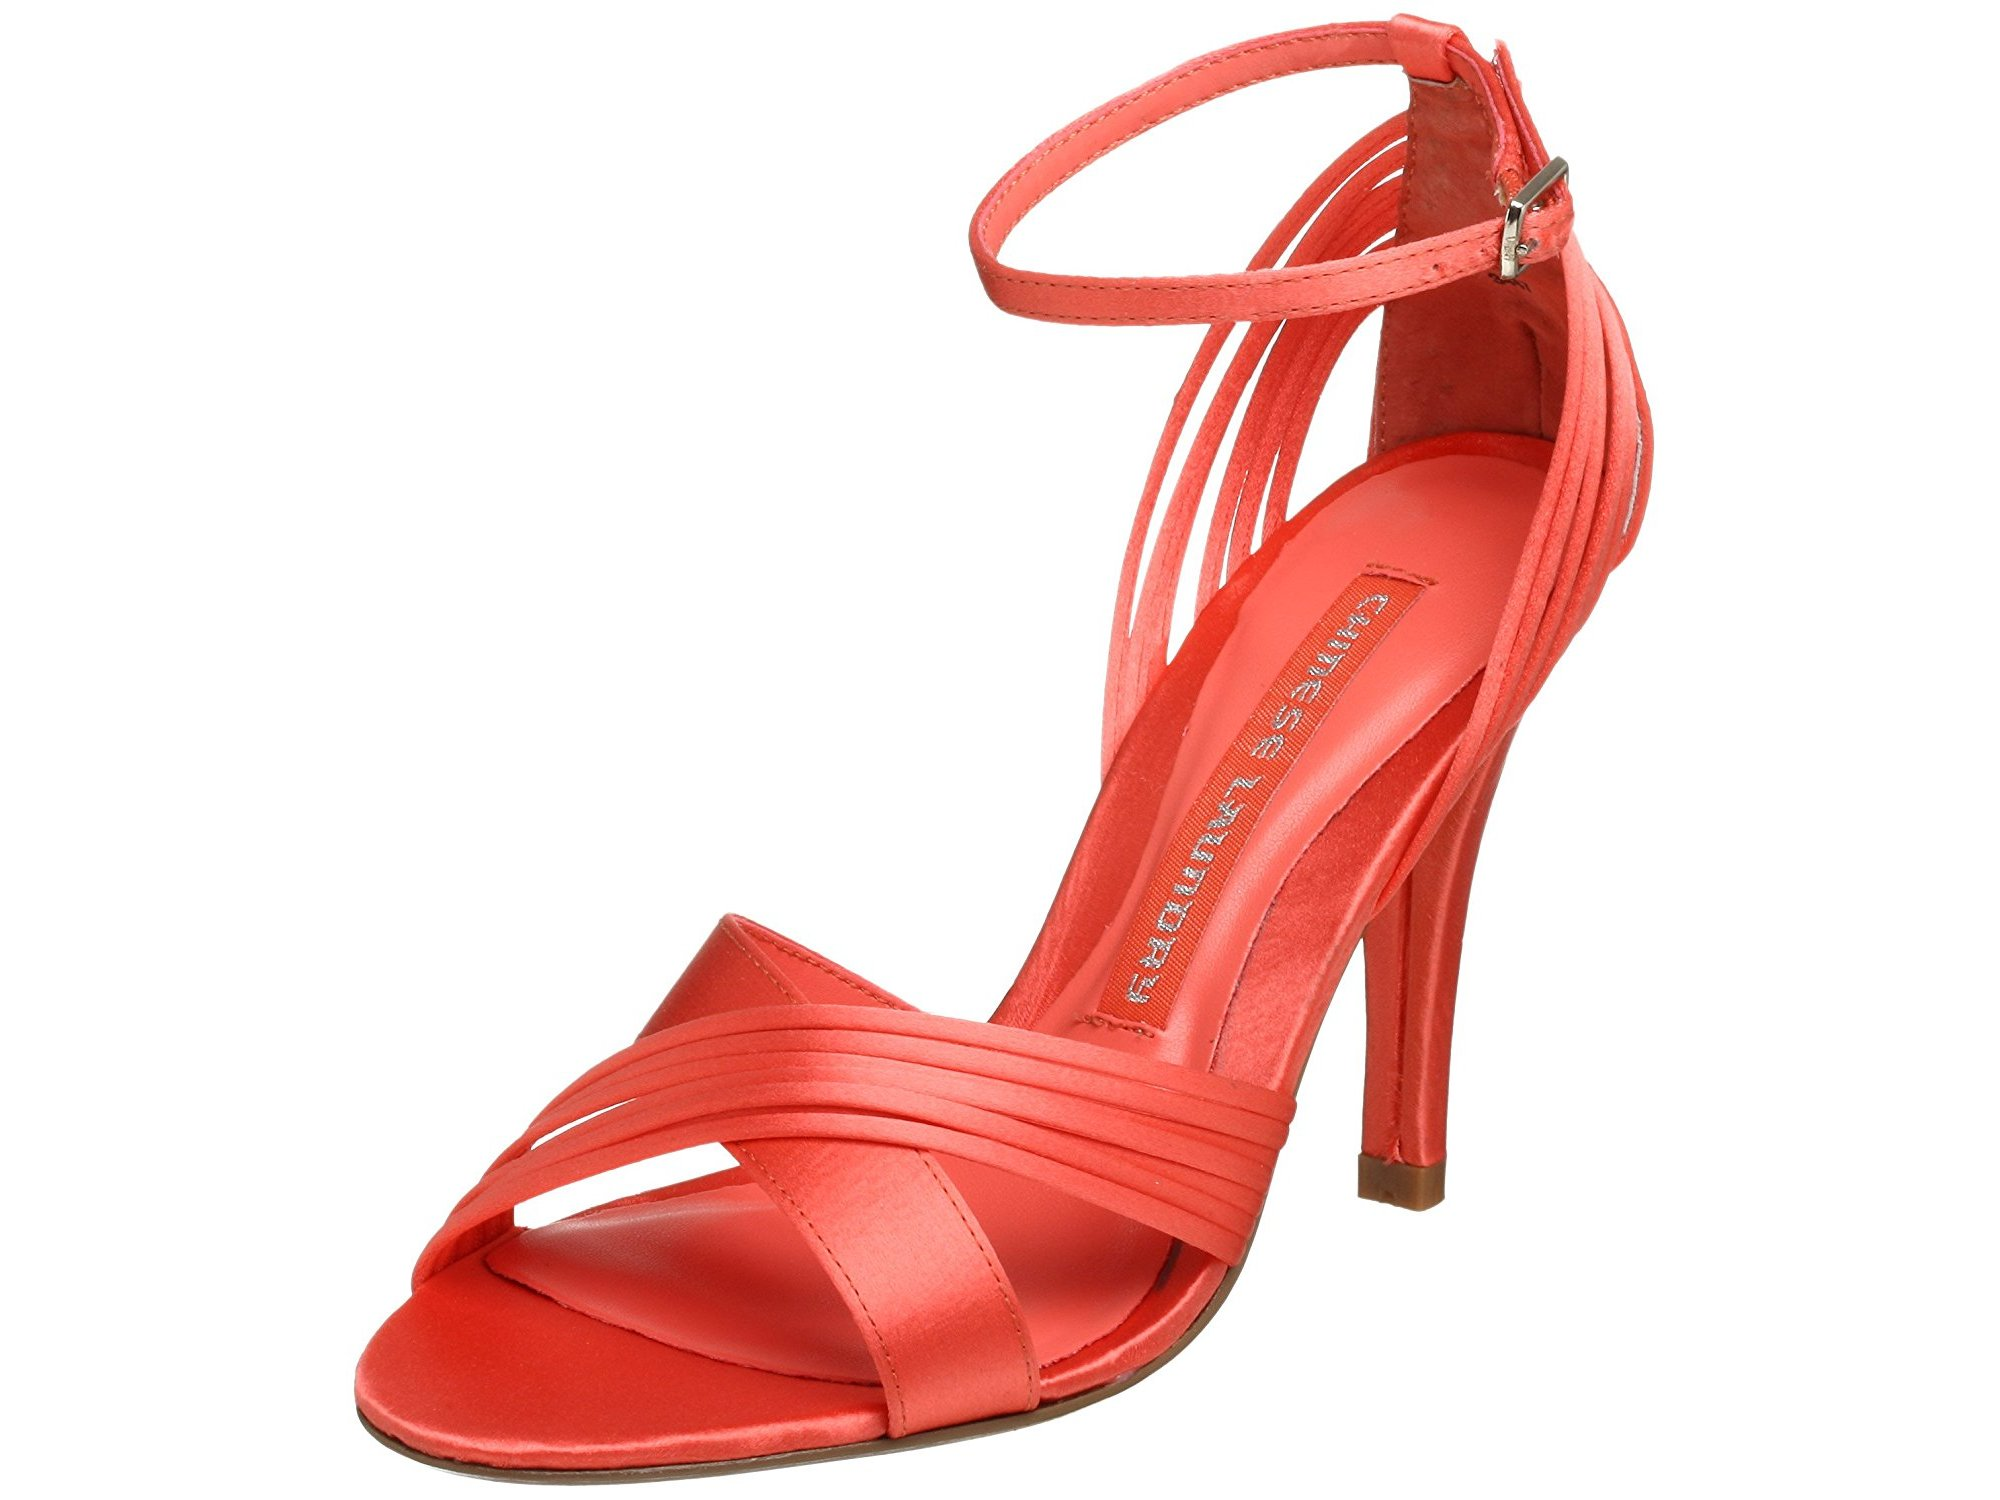 Chinese Laundry Womens Friday Fabric Open Toe Ankle Strap, Coral, Size 5.5